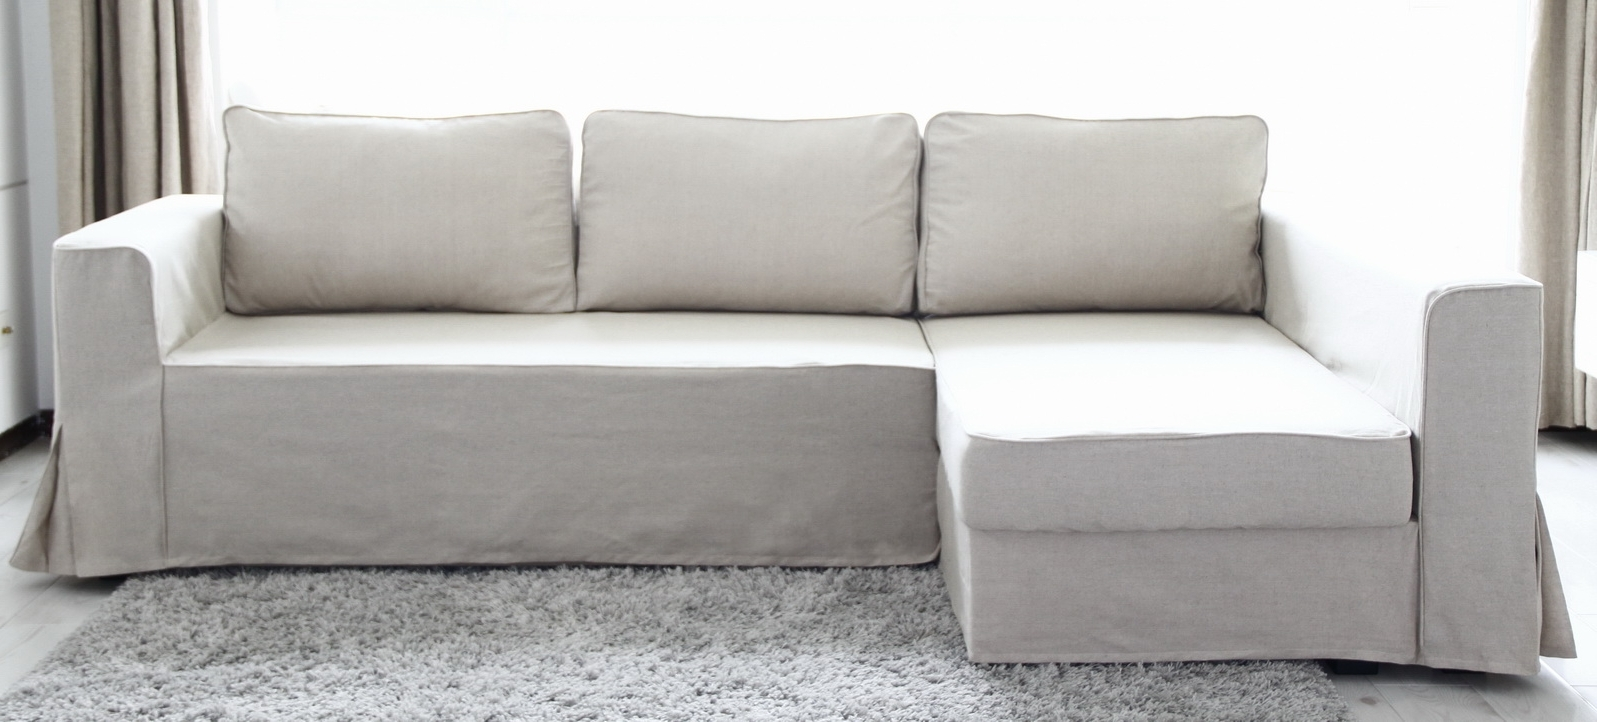 Loose Fit Linen Manstad Sofa Slipcovers Now Available Throughout Best And Newest Karlstad Chaise Covers (View 10 of 15)